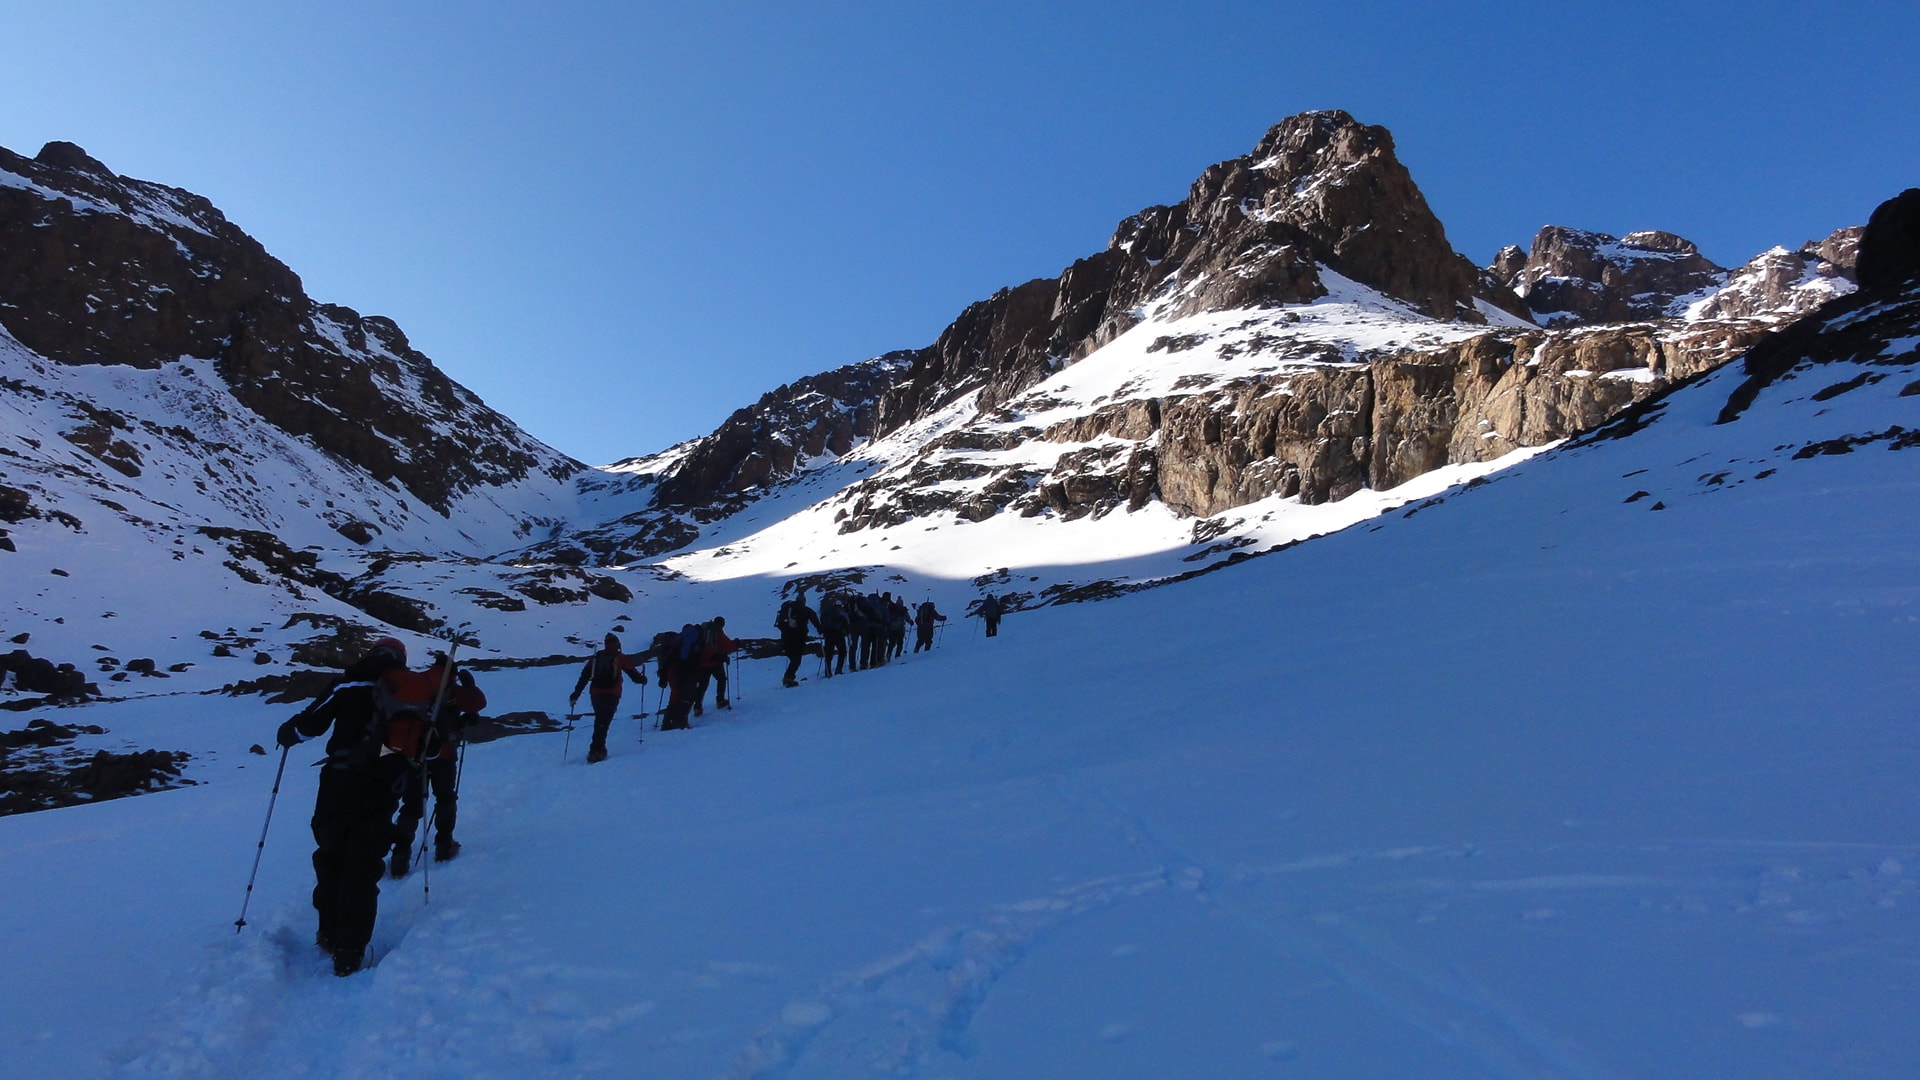 pathfinders treks - 2 day trek mt toubkal ascent